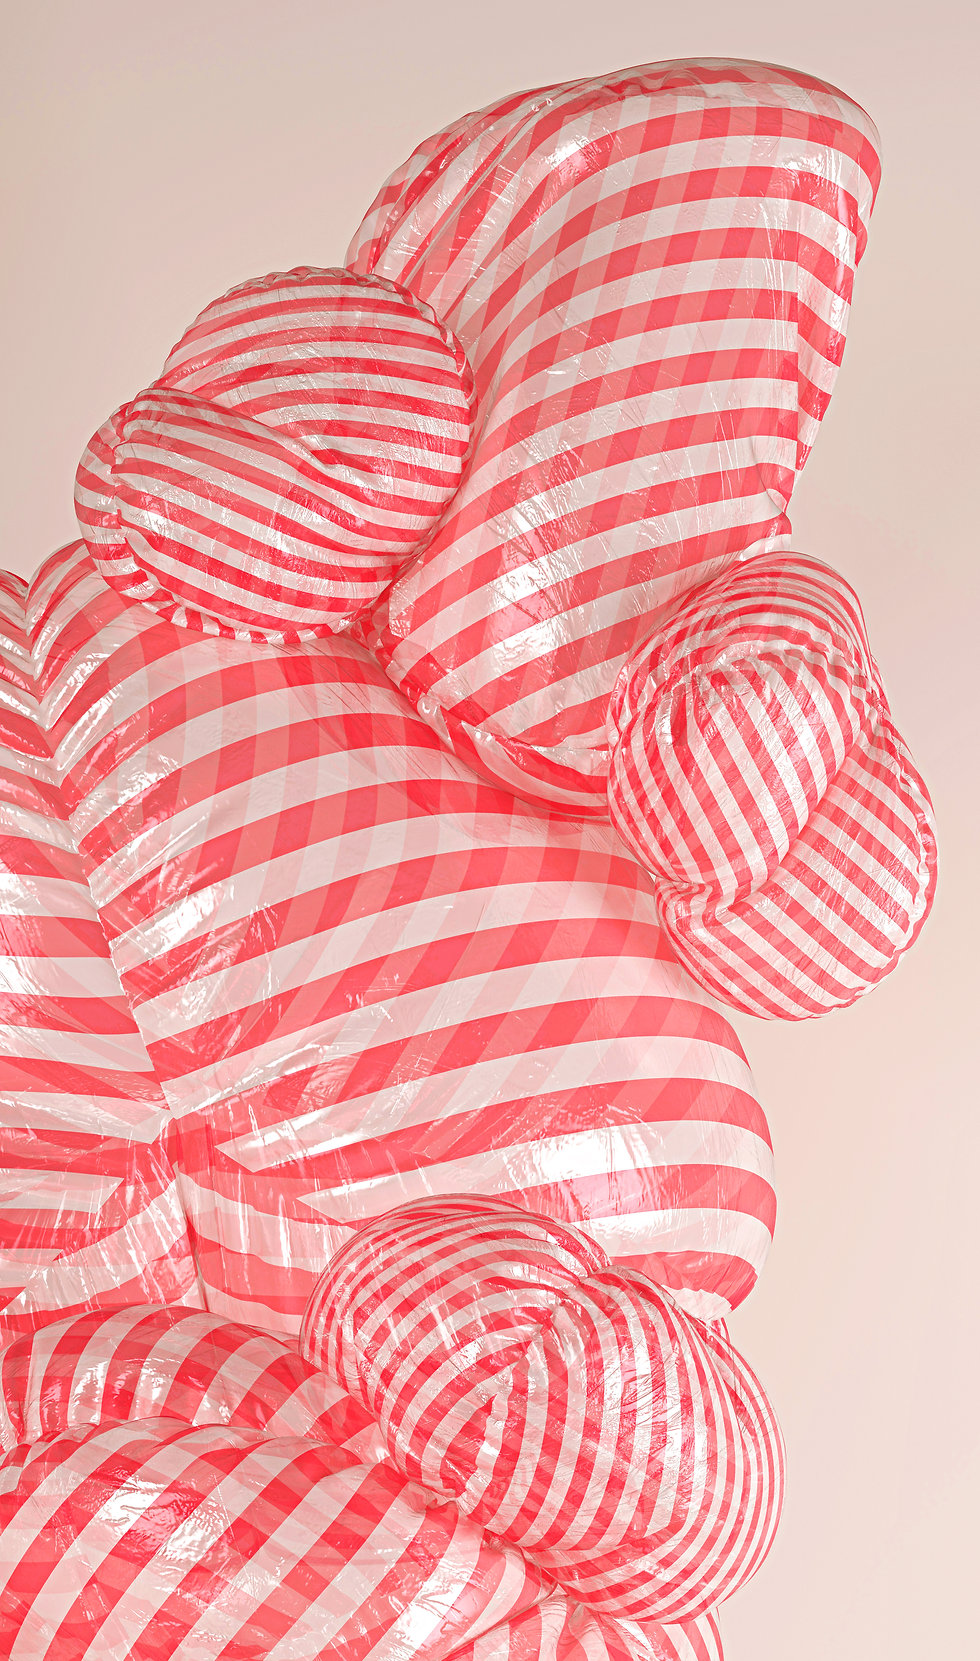 Closeup of blown up red-white stripes amorphic shapes made of transparent plastic